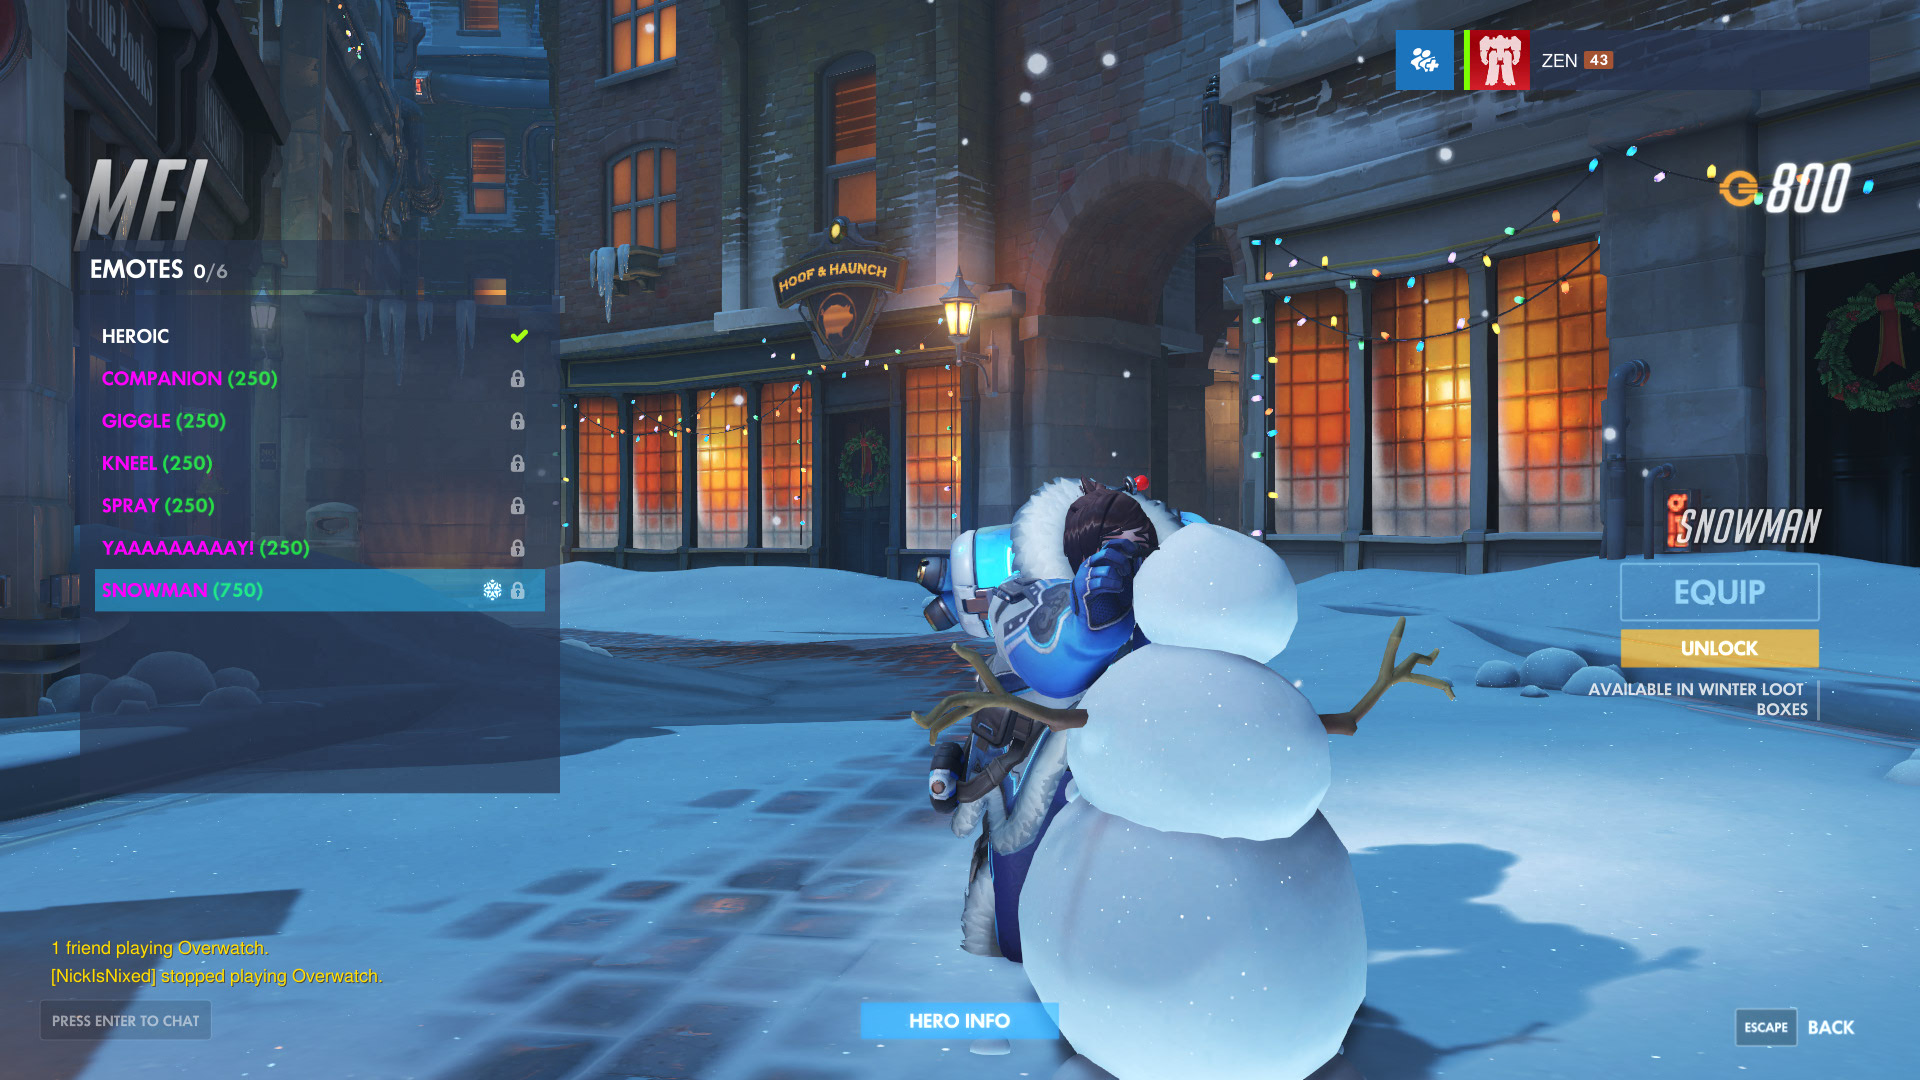 Overwatch Holiday Update Offers New Winter Wonderland Skins | USgamer